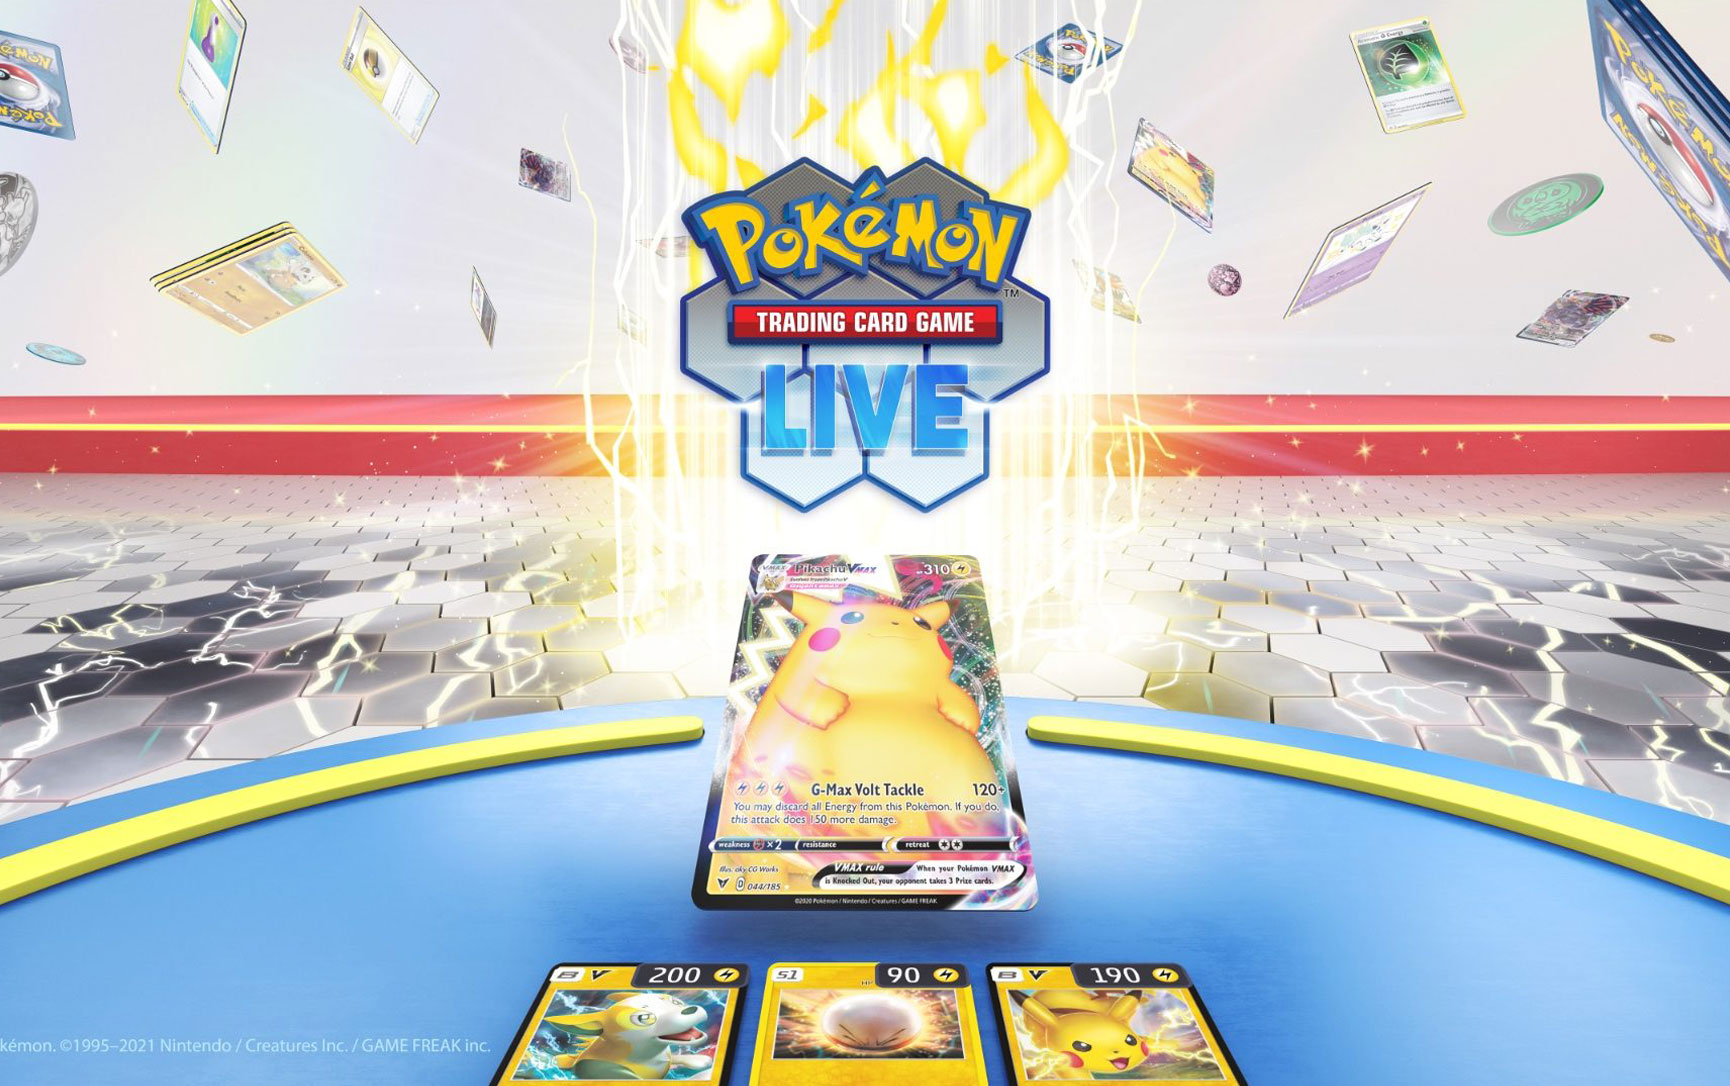 Pokémon TCG Live is coming to your iPhone and Mac soon